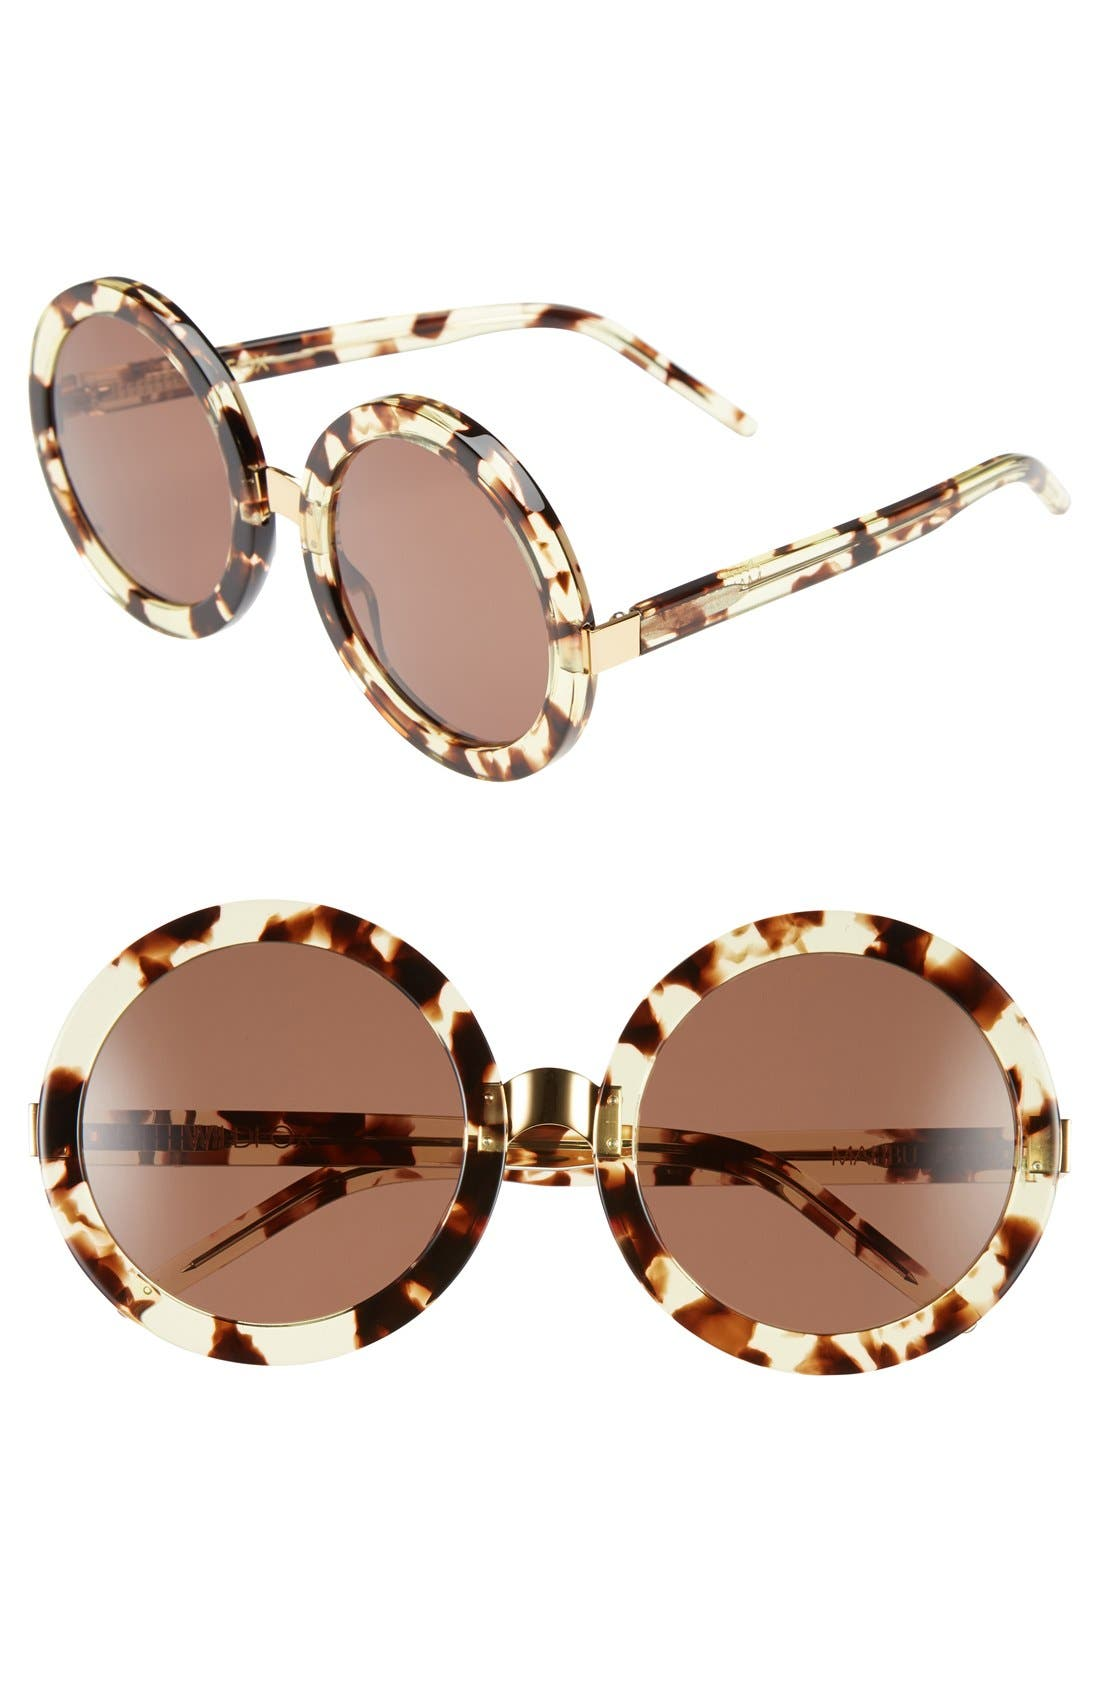 Main Image - Wildfox 'Malibu' 56mm Round Sunglasses